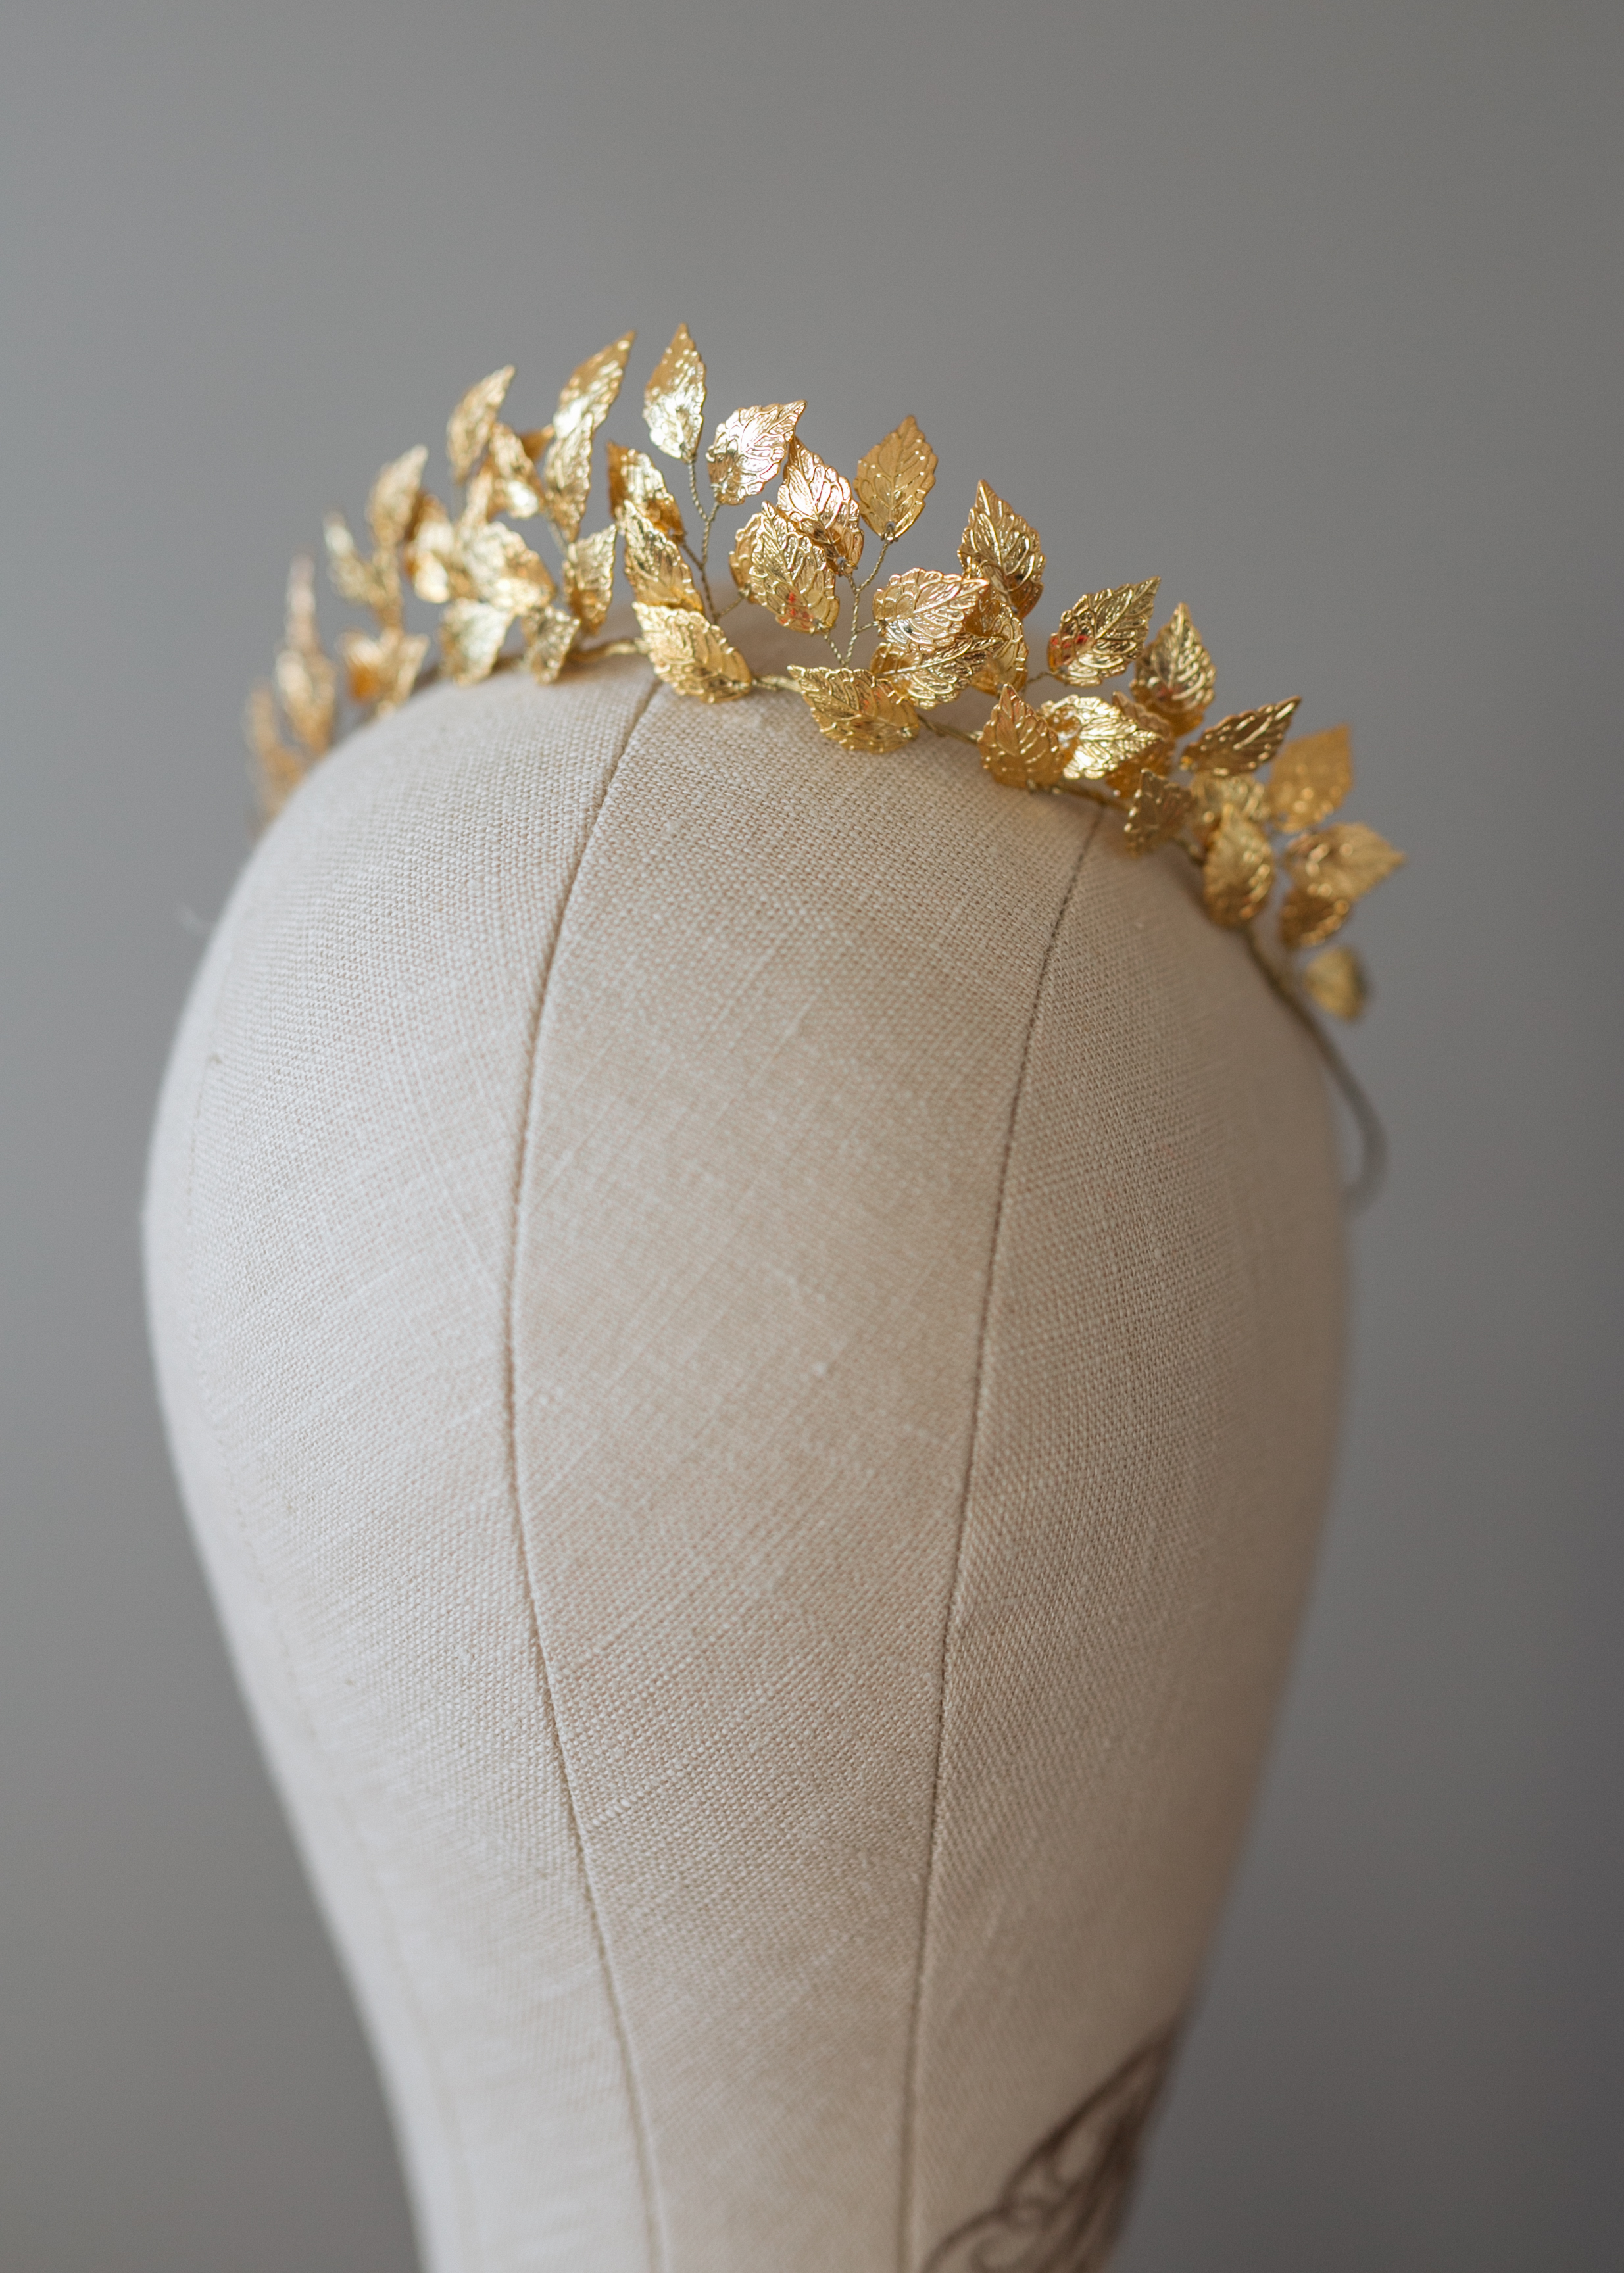 Find your perfect Golden Leaf Headpiece - Handmade in SwitzerlandUnique DesignPossibility to Rush OrdersFree Shipping WorldwideCustomisable OrdersFast response on your questions